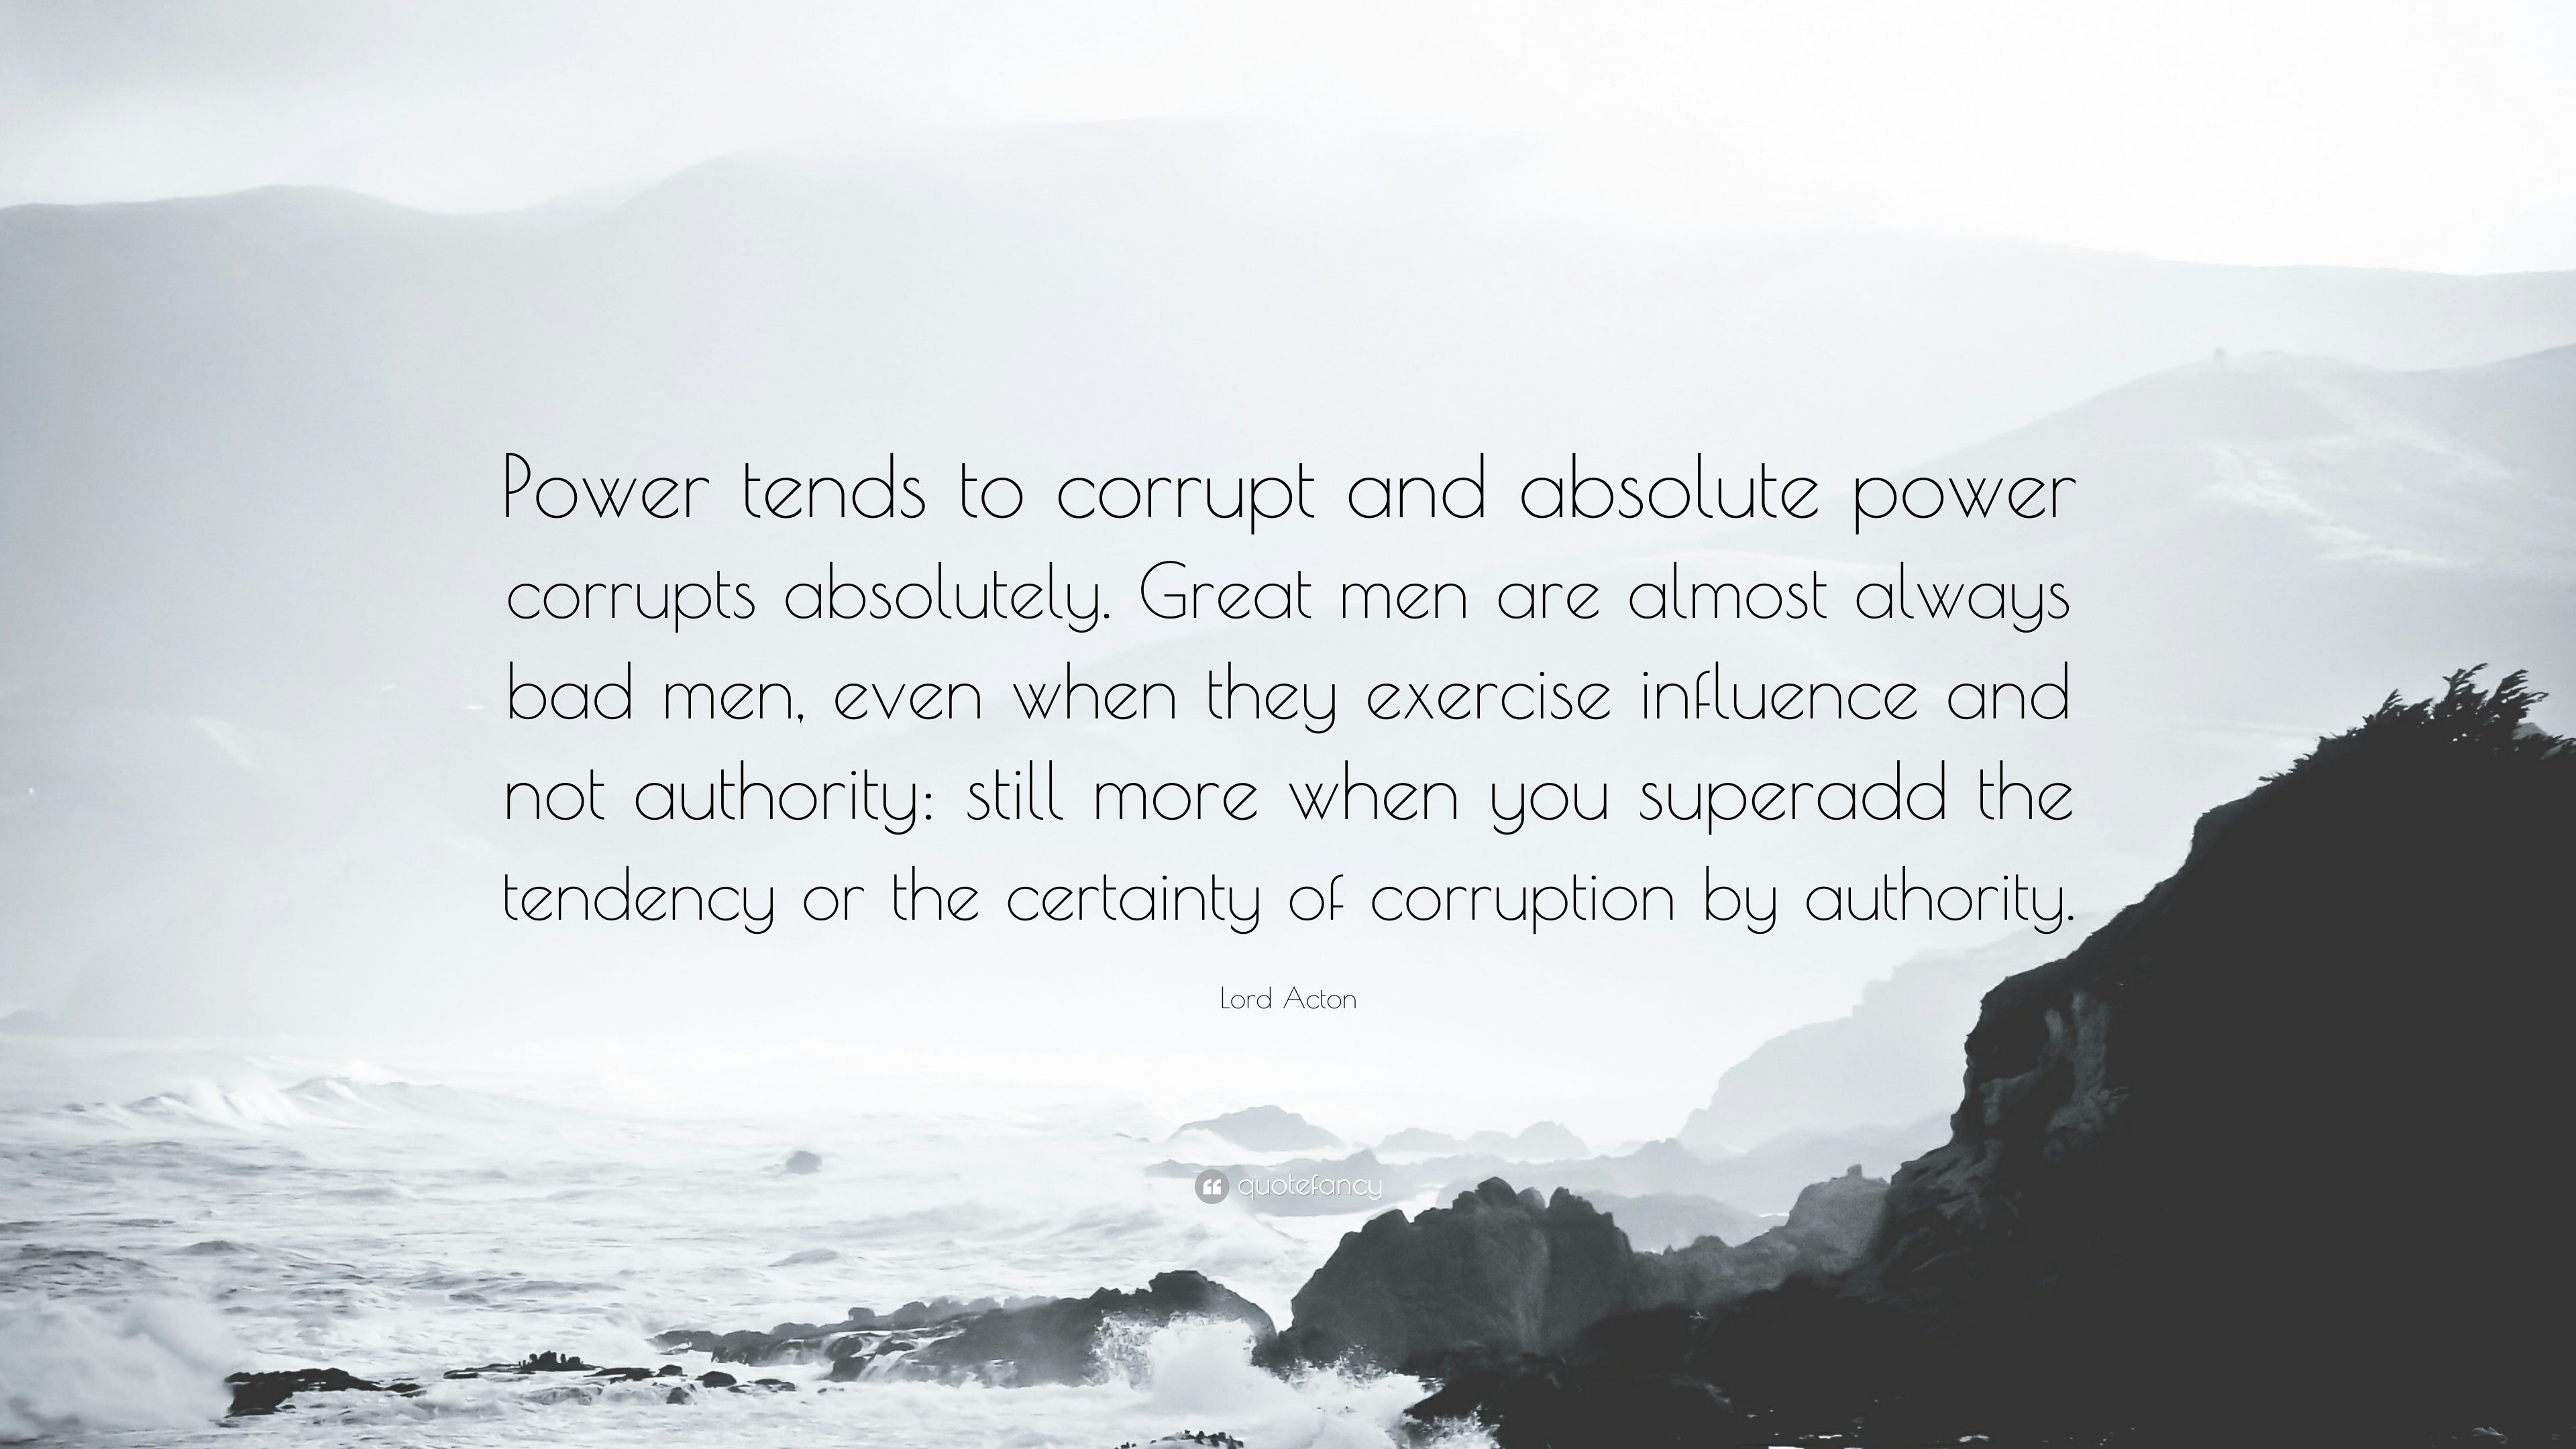 who said absolute power corrupts absolutely